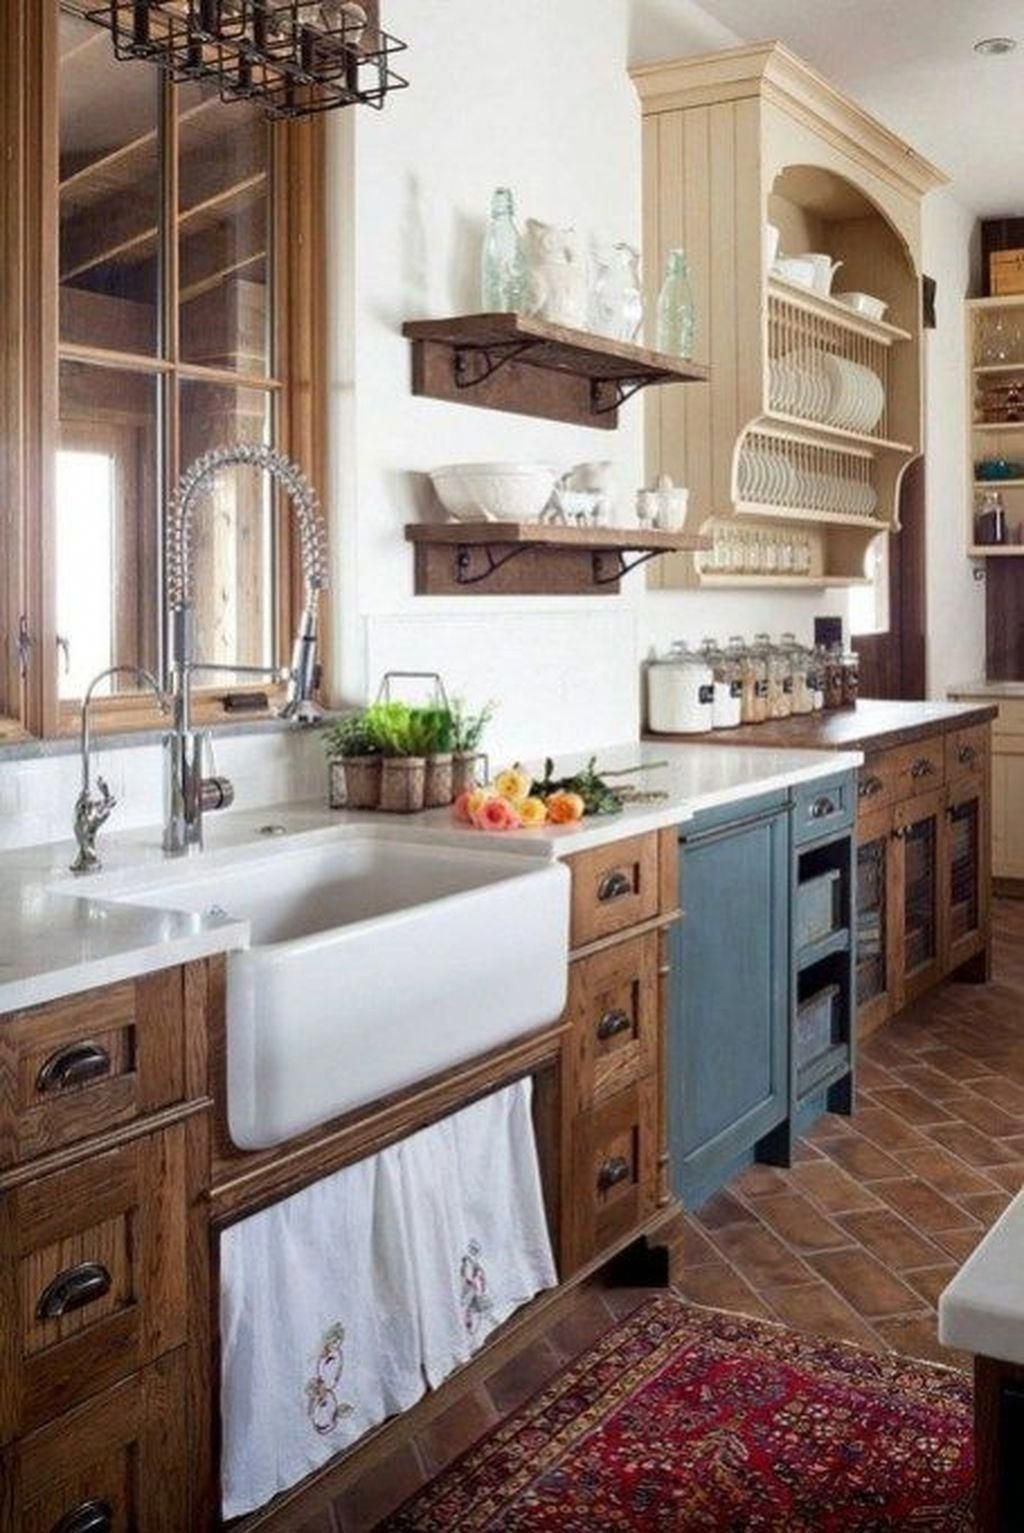 Utilize Your Mismatched Meals And Cups To Decorate A Elegant Shelf Hanging On Farmhouse Style Kitchen Cabinets Farmhouse Style Kitchen Kitchen Cabinet Styles